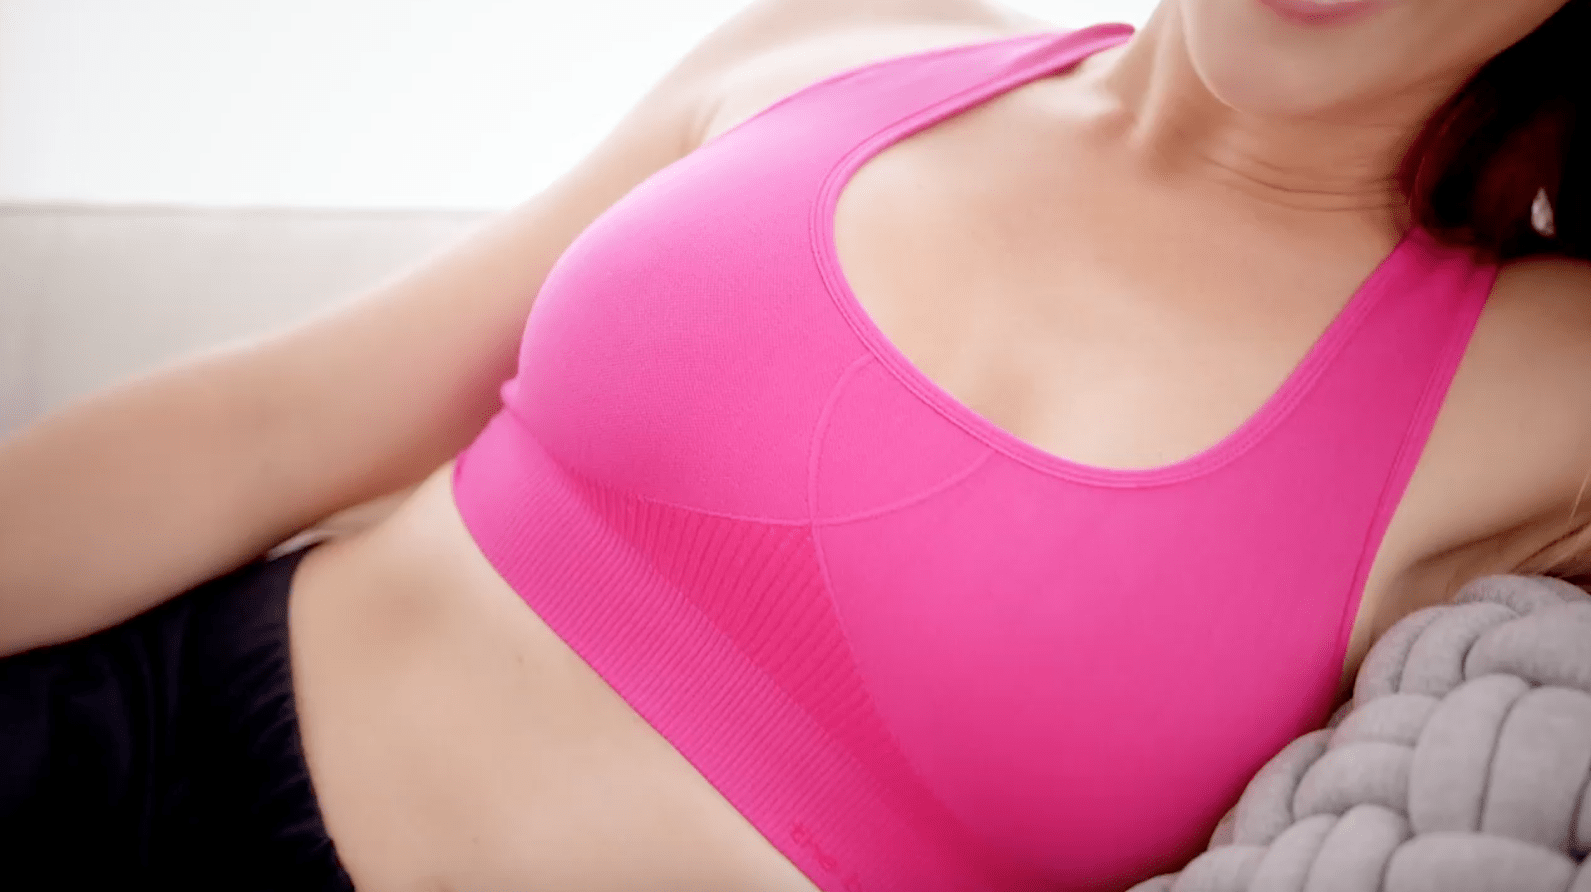 The Review Wire: The Breast Whisperer Hot Pink Bra